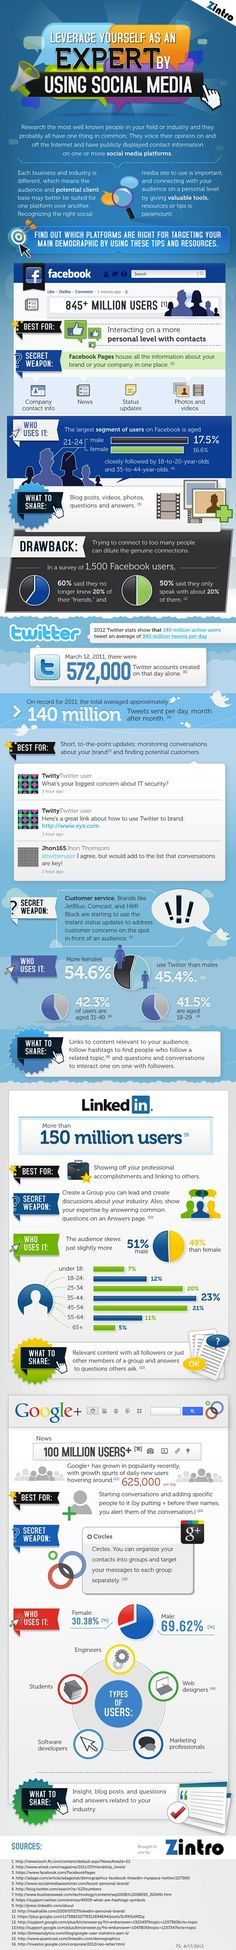 Leveraging Yourself as an Expert By Using Social Media infographic